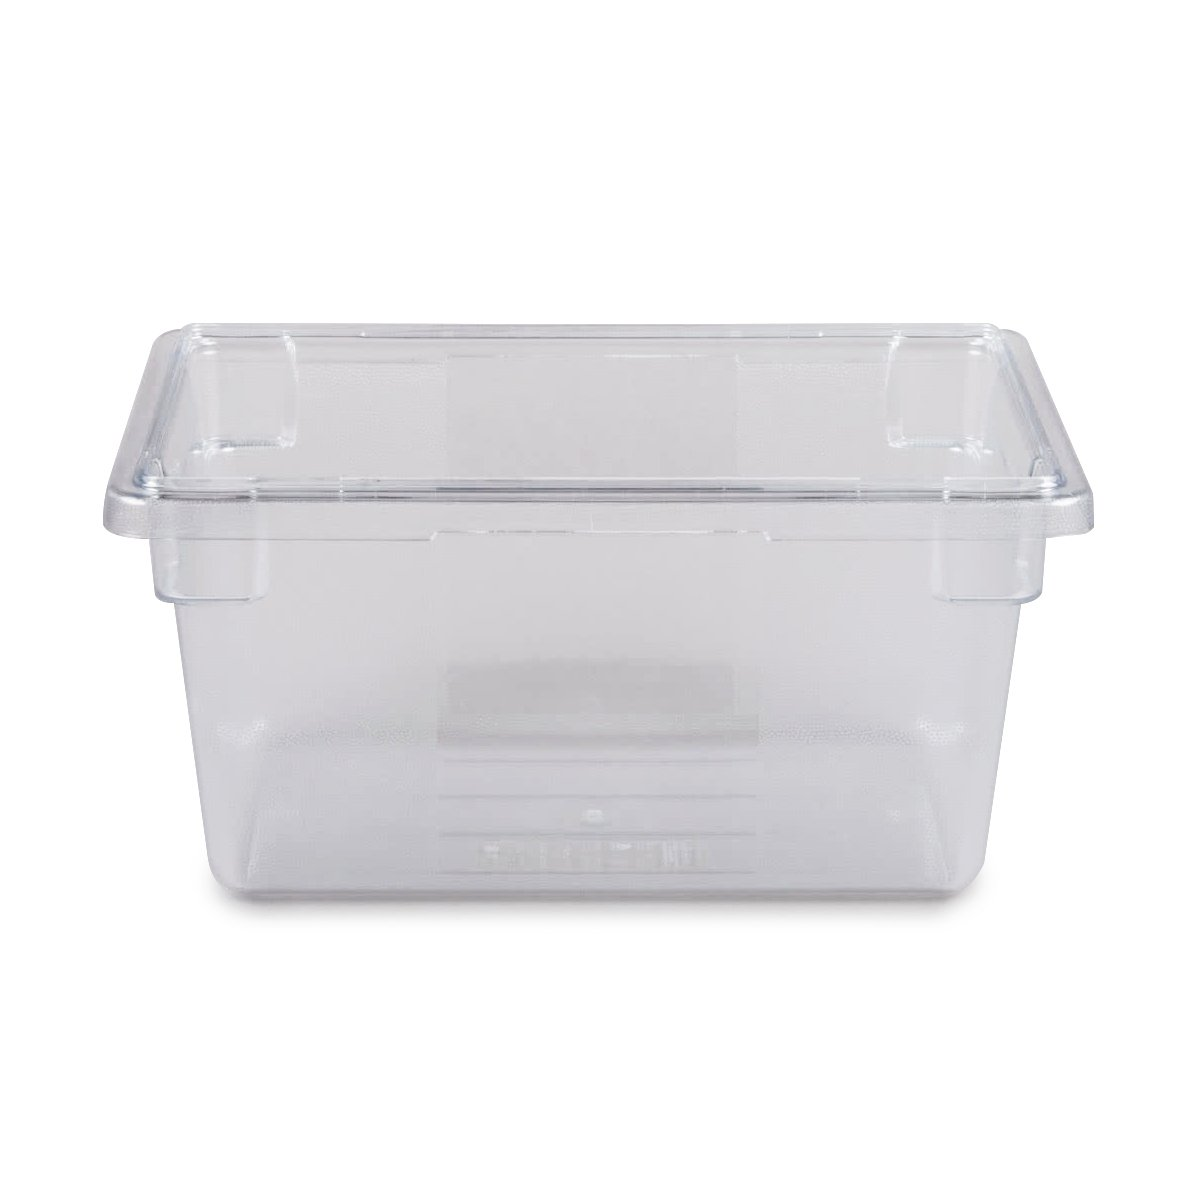 Rubbermaid Commercial 3306CLE Food/Tote Boxes, 5gal, 26w x 18d x 3 1/2h, Clear FG330400CLR